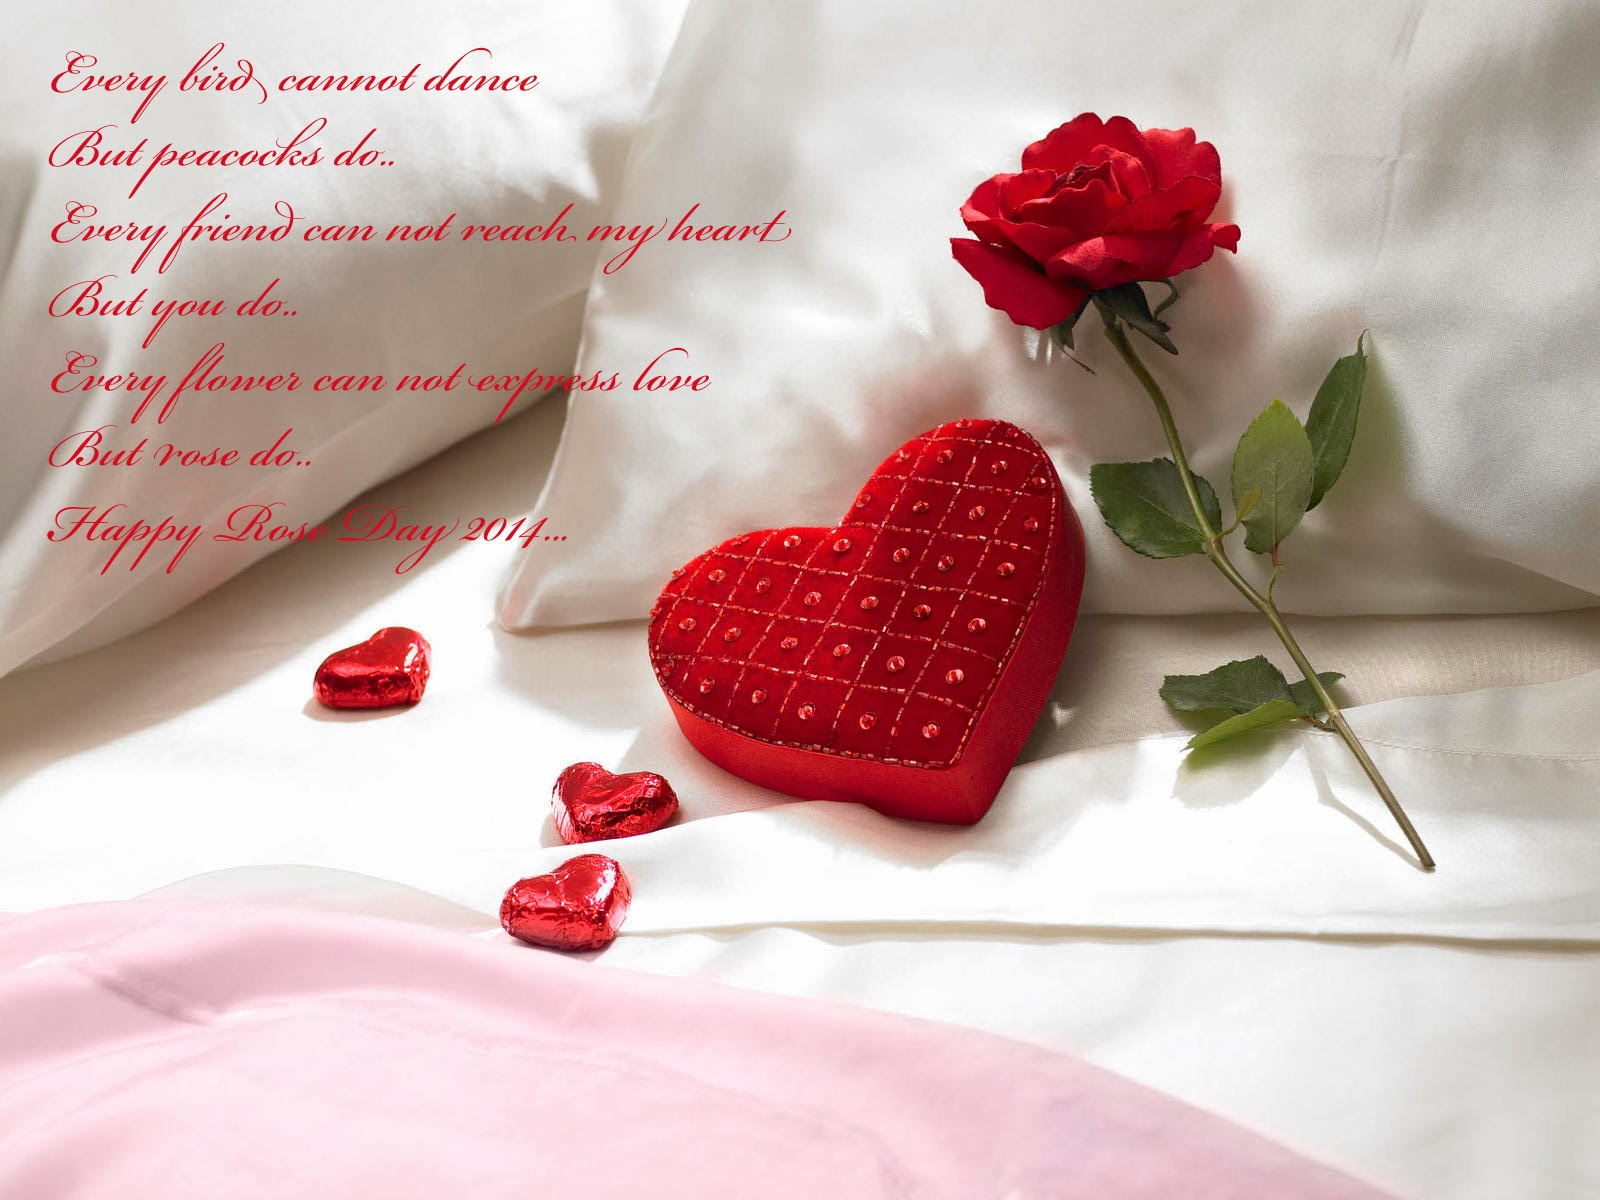 Lovely Pictures of Love With Quotes in Hindi Love Day Sms Love Sms in Hindi